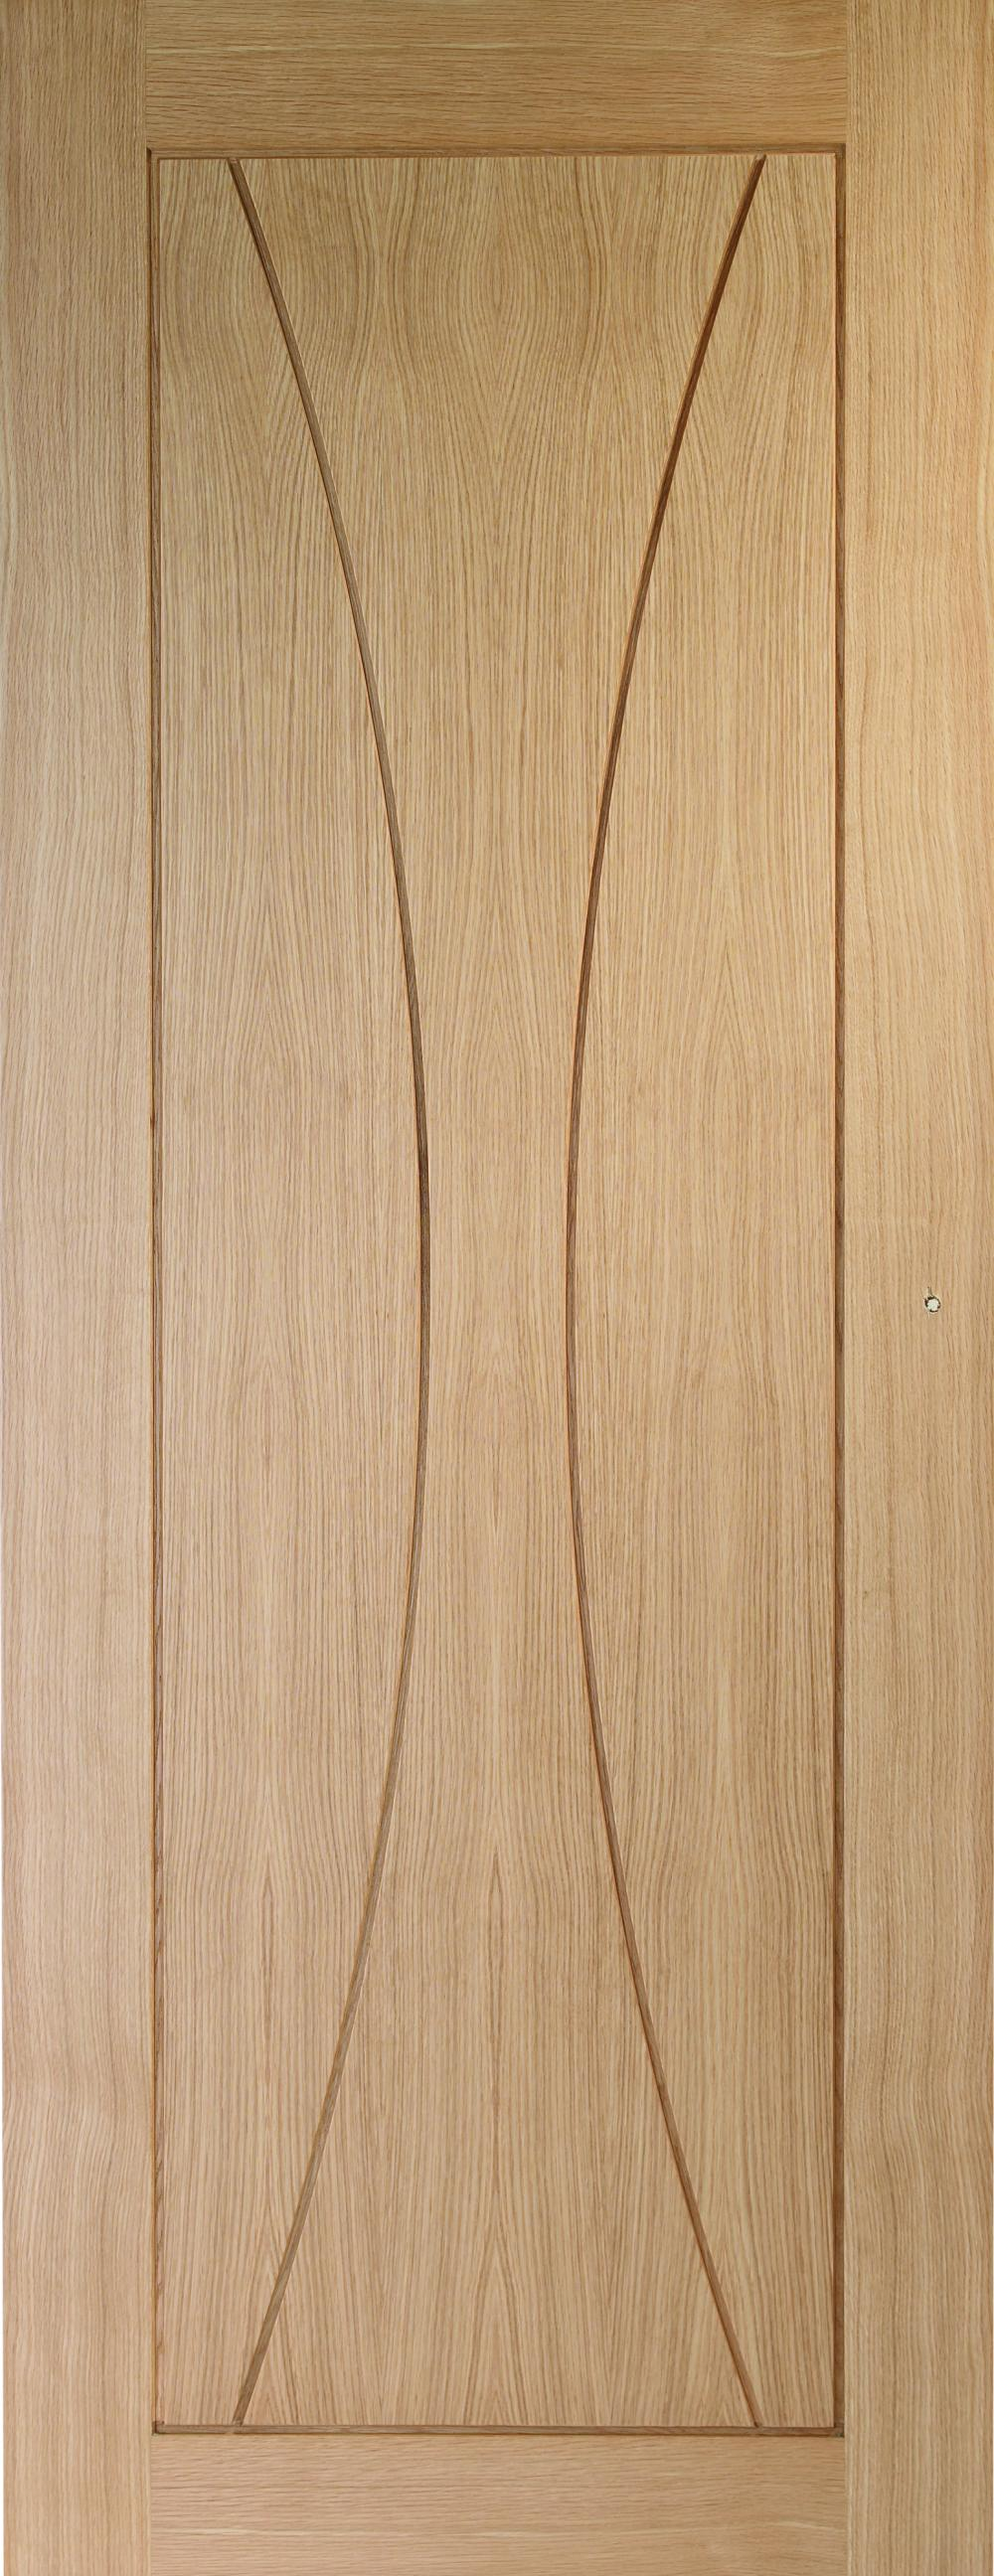 Verona Oak - PREFINISHED :  Image